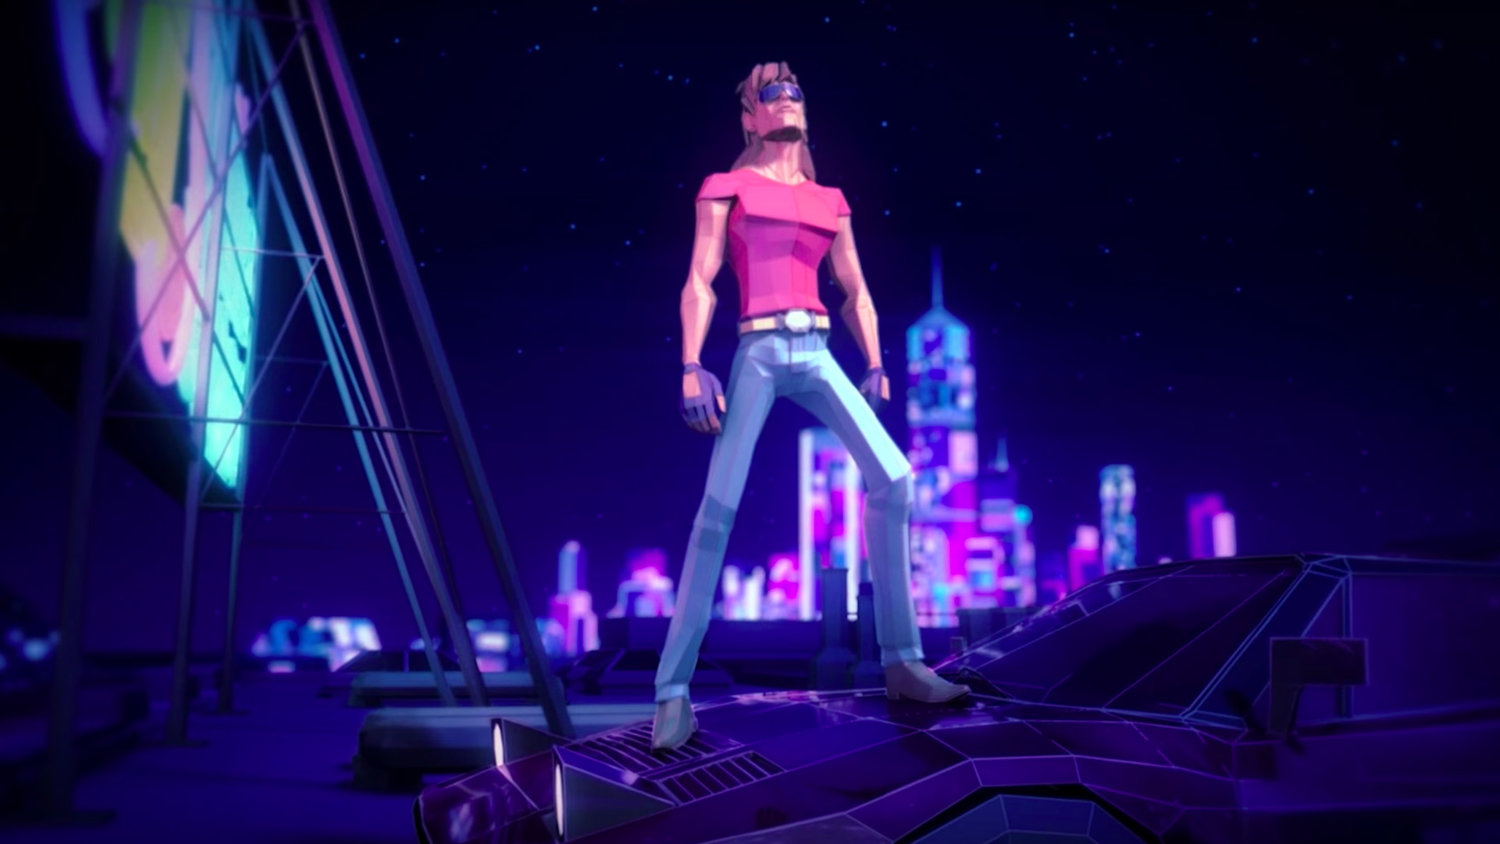 '80s-Inspired Short Film META MAN Has Some Serious Style